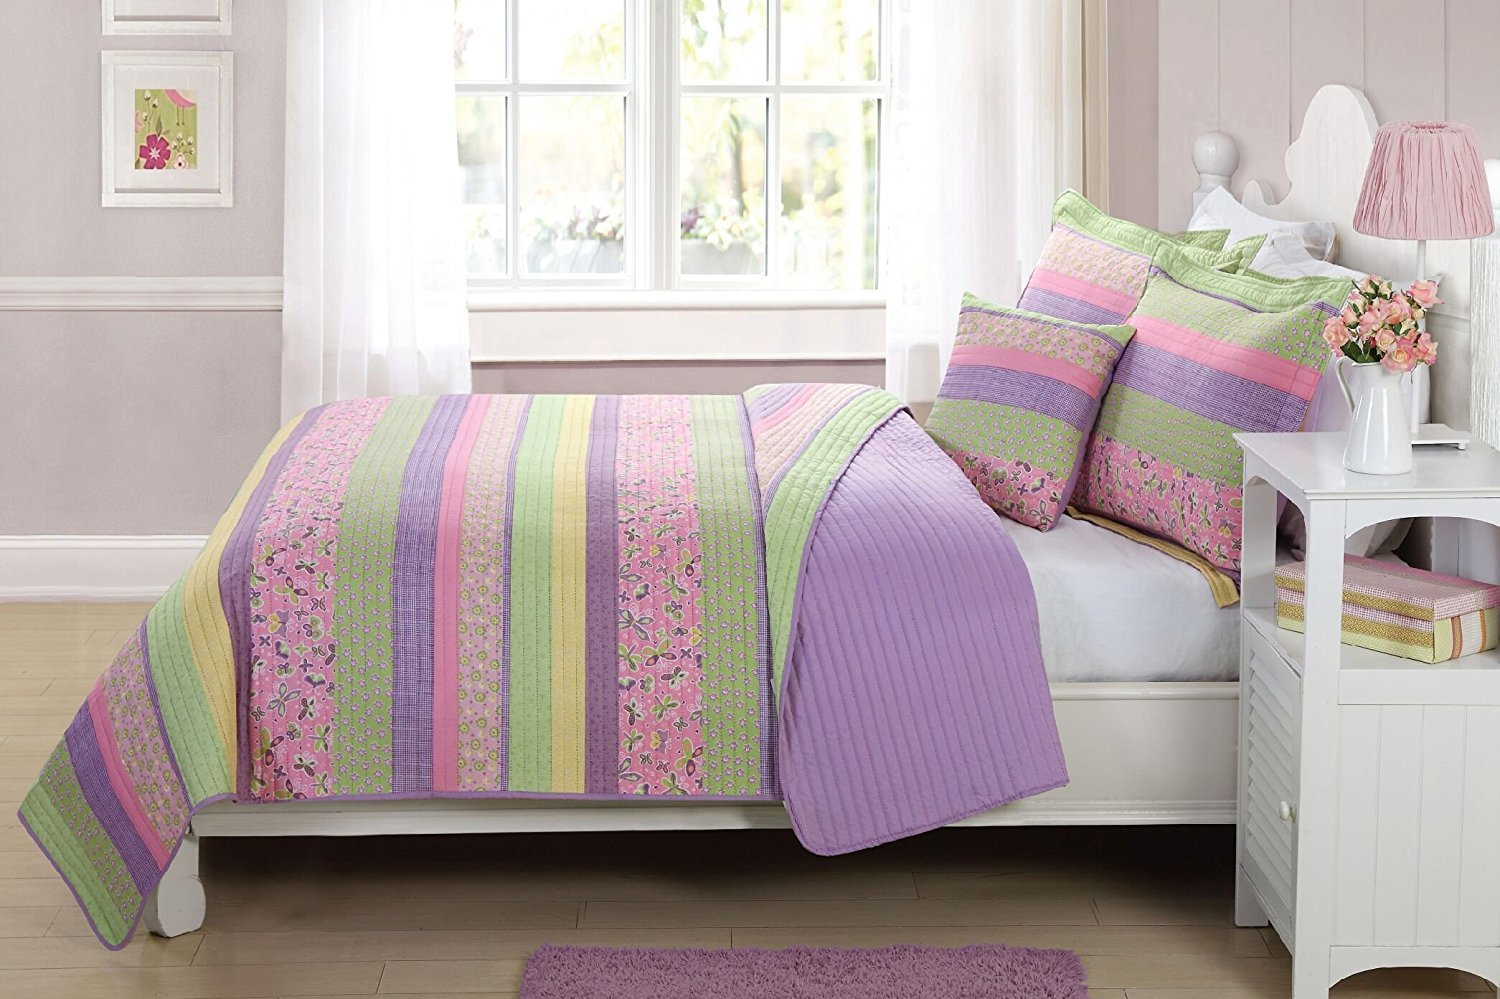 Elegant Home Multicolor Purple Yellow Green Pink Fun Striped With Butterflies Printed Reversible Cozy Colorful 3 Piece Twin Size Quilt Bedspread Set with Decorative Pillow for Kids / Girls (Twin) by Elegant Home Decor